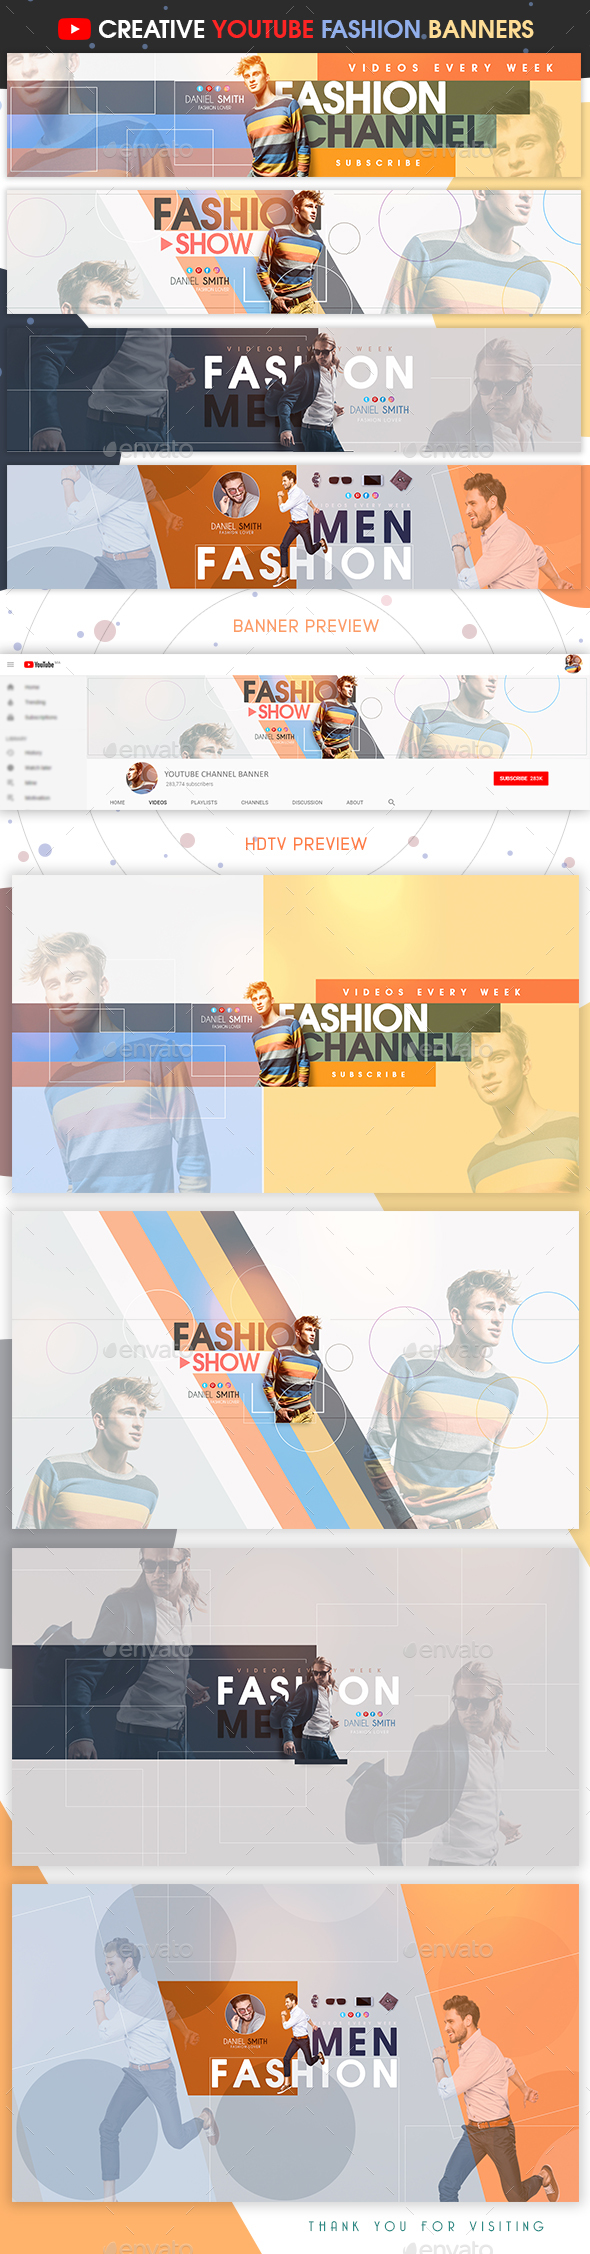 Creative YouTube Fashion Banners - YouTube Social Media